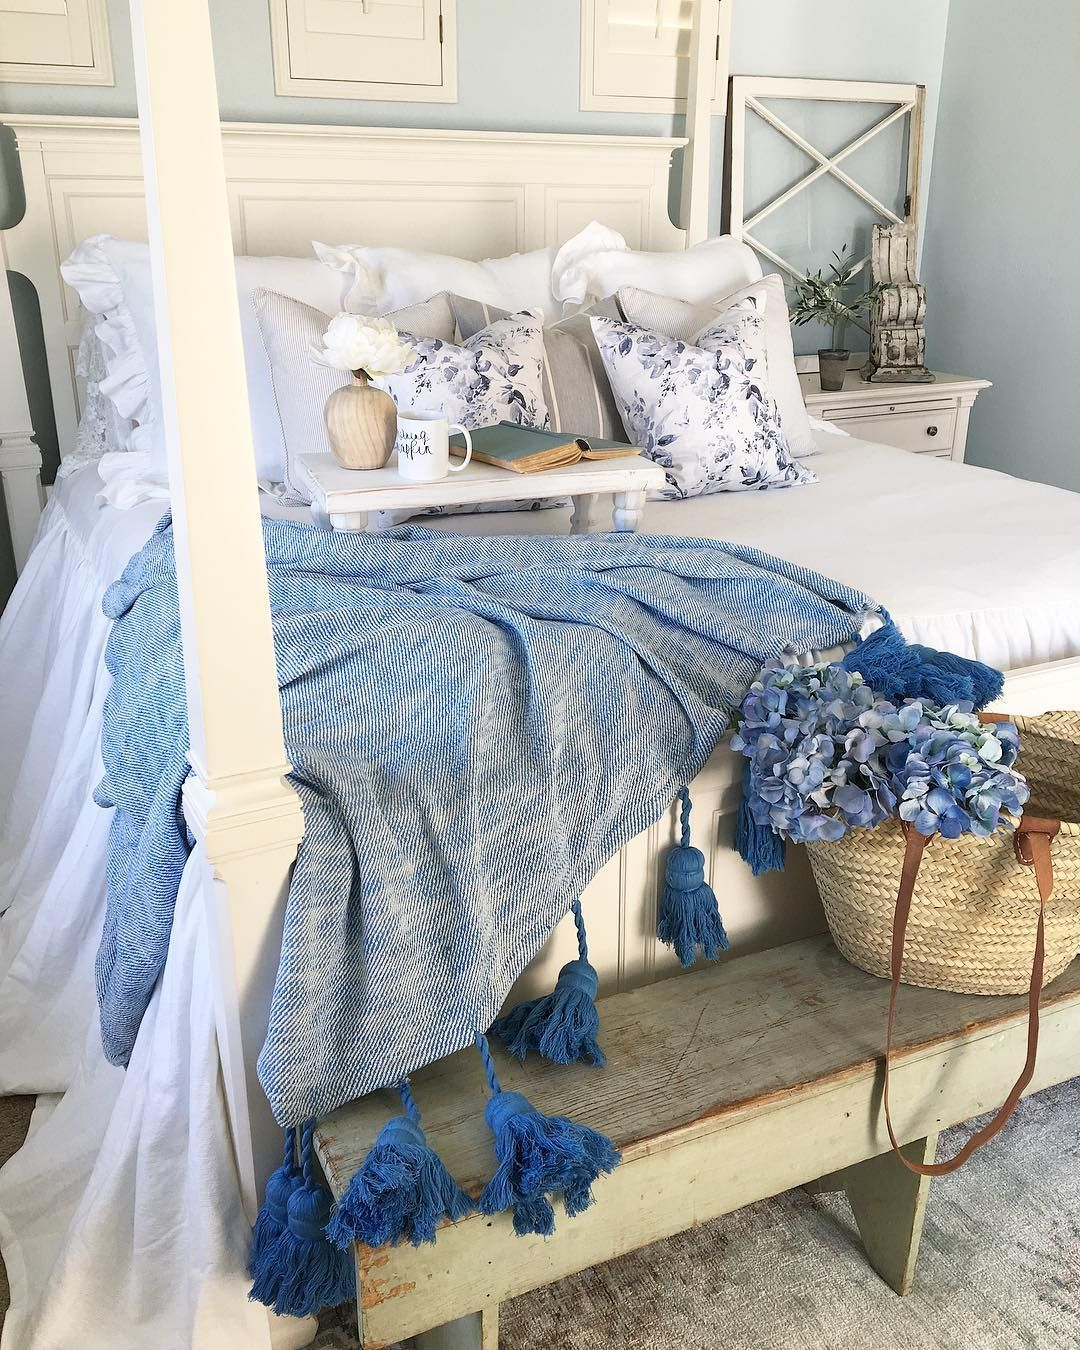 White Bedding On Cream Four Poster Bed With Blue Throw And